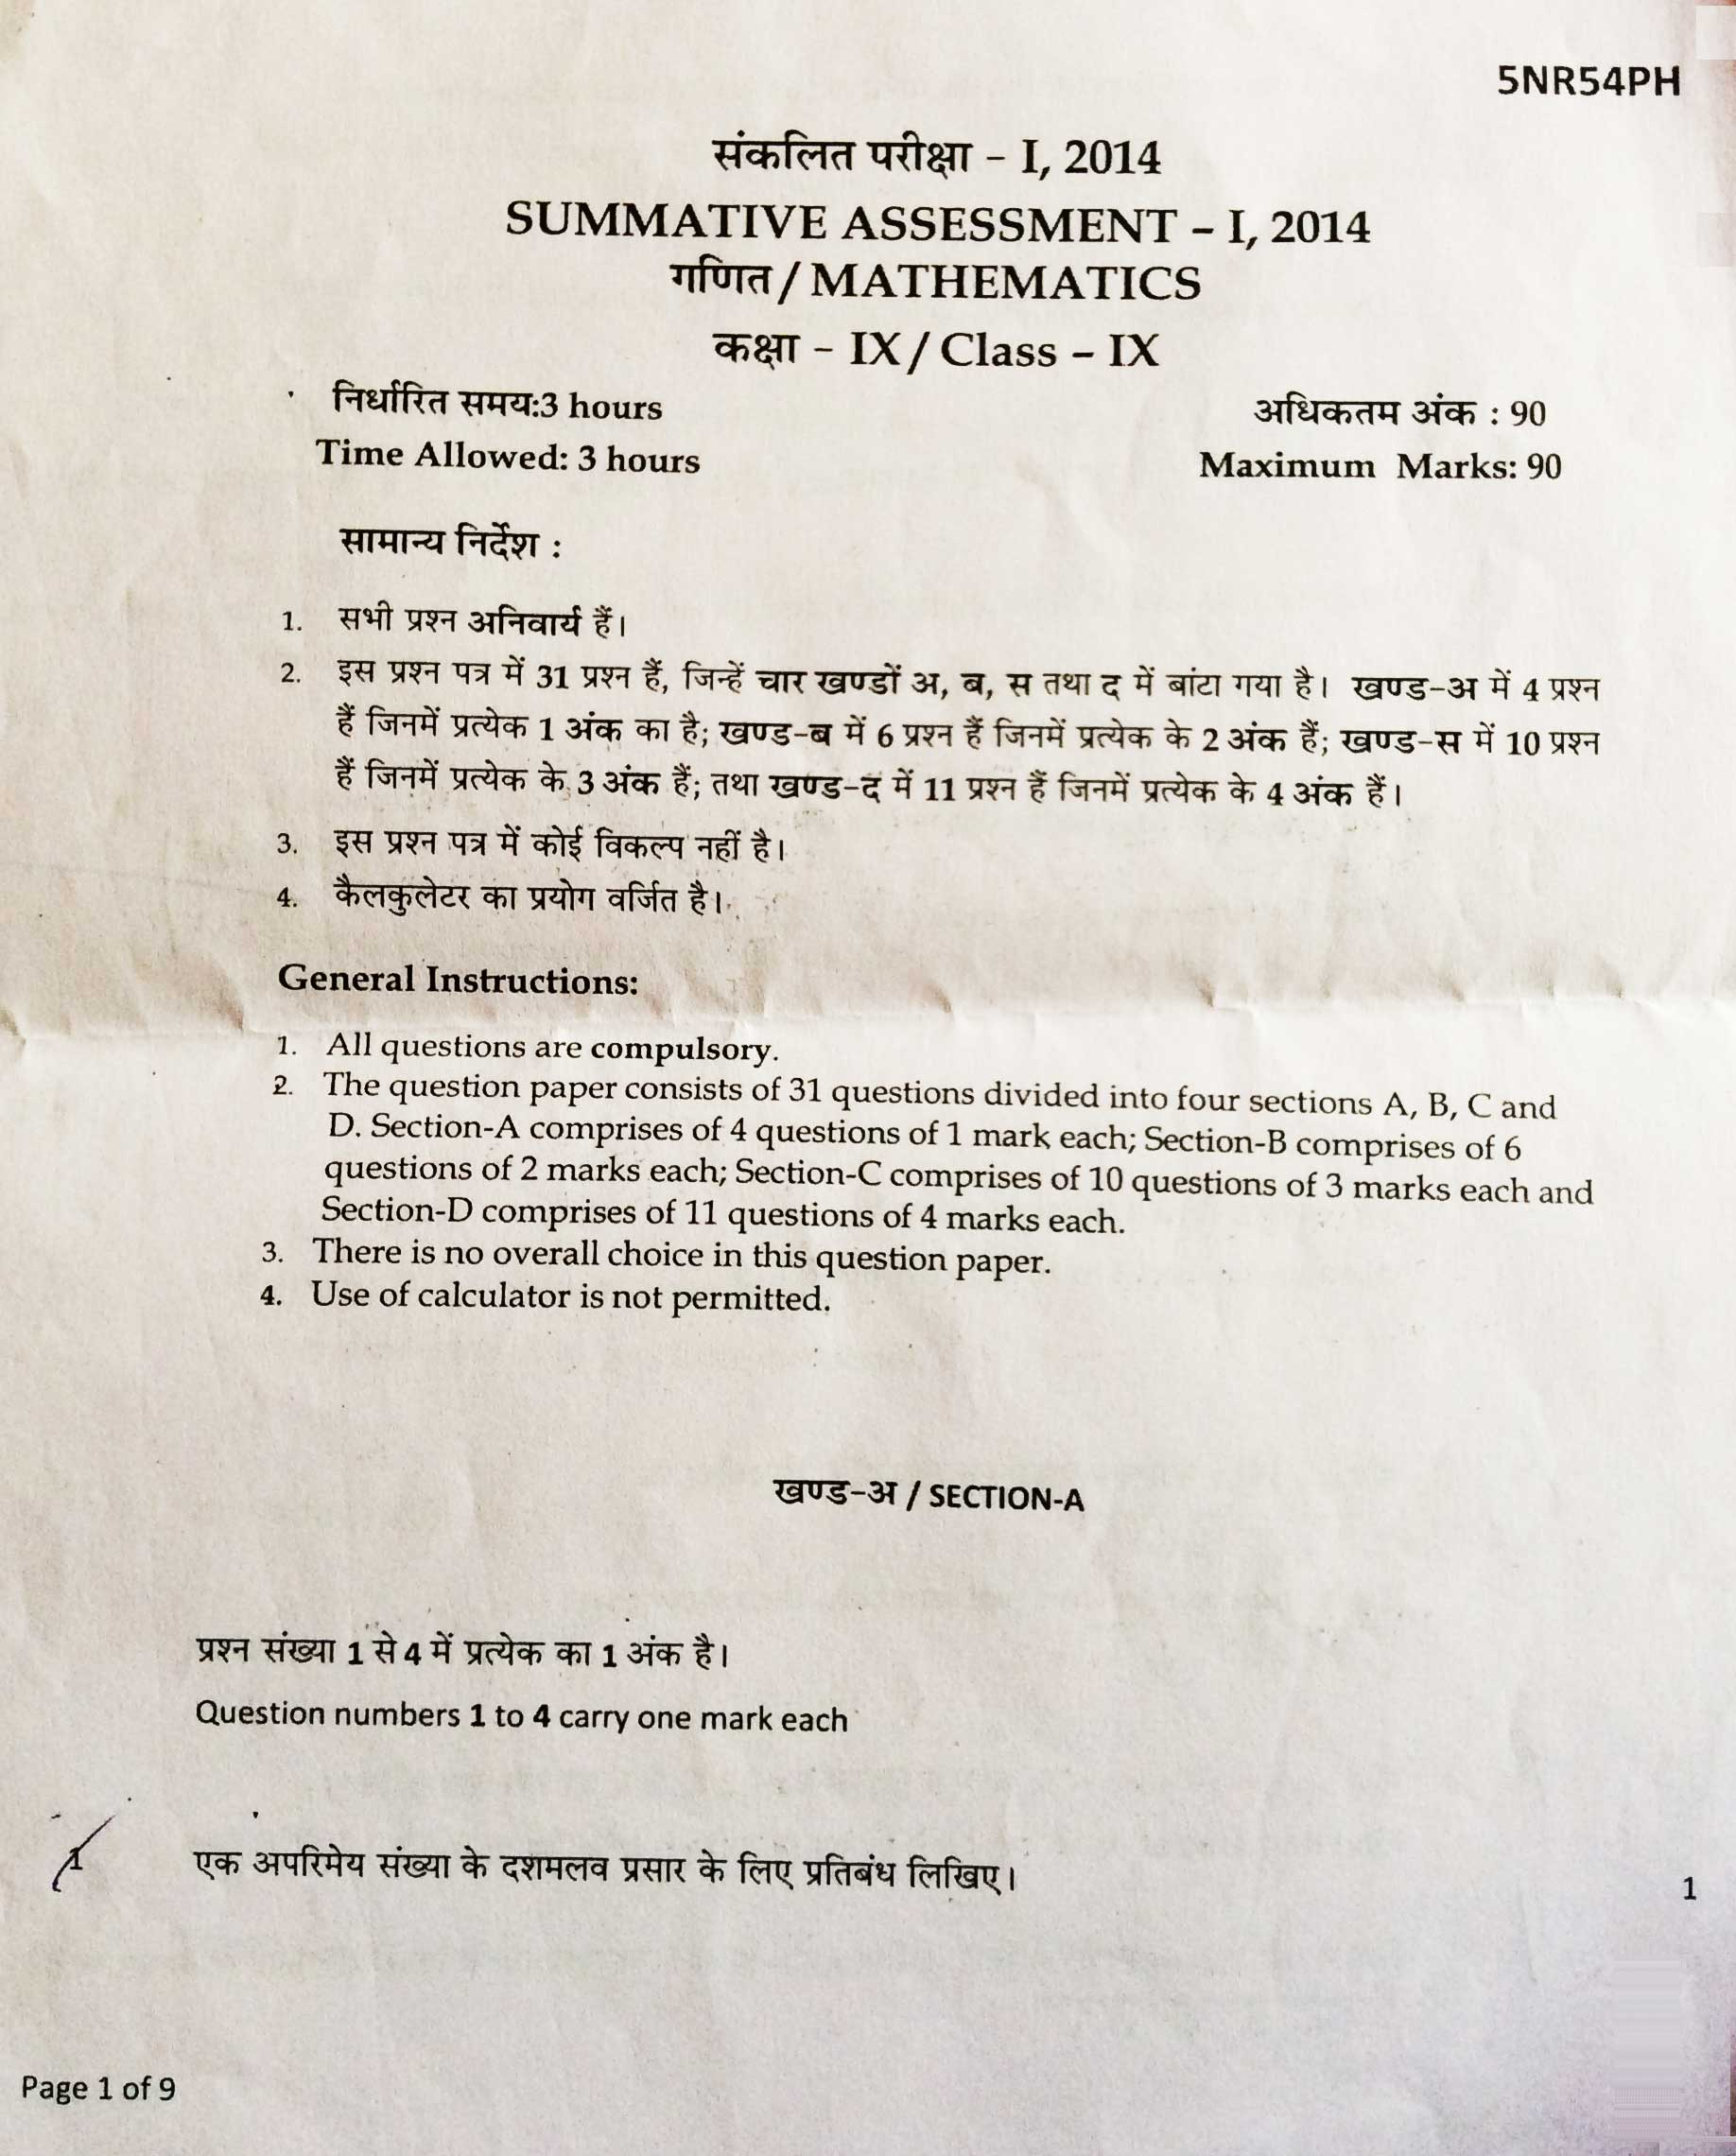 class 9 sa 1 paper 2013 cbse Class ix mathematics sa-i question paper 2013  science sa2 class 9 cbse question paper shrivathsan venkataraman class 9 cbse mathematics question paper.